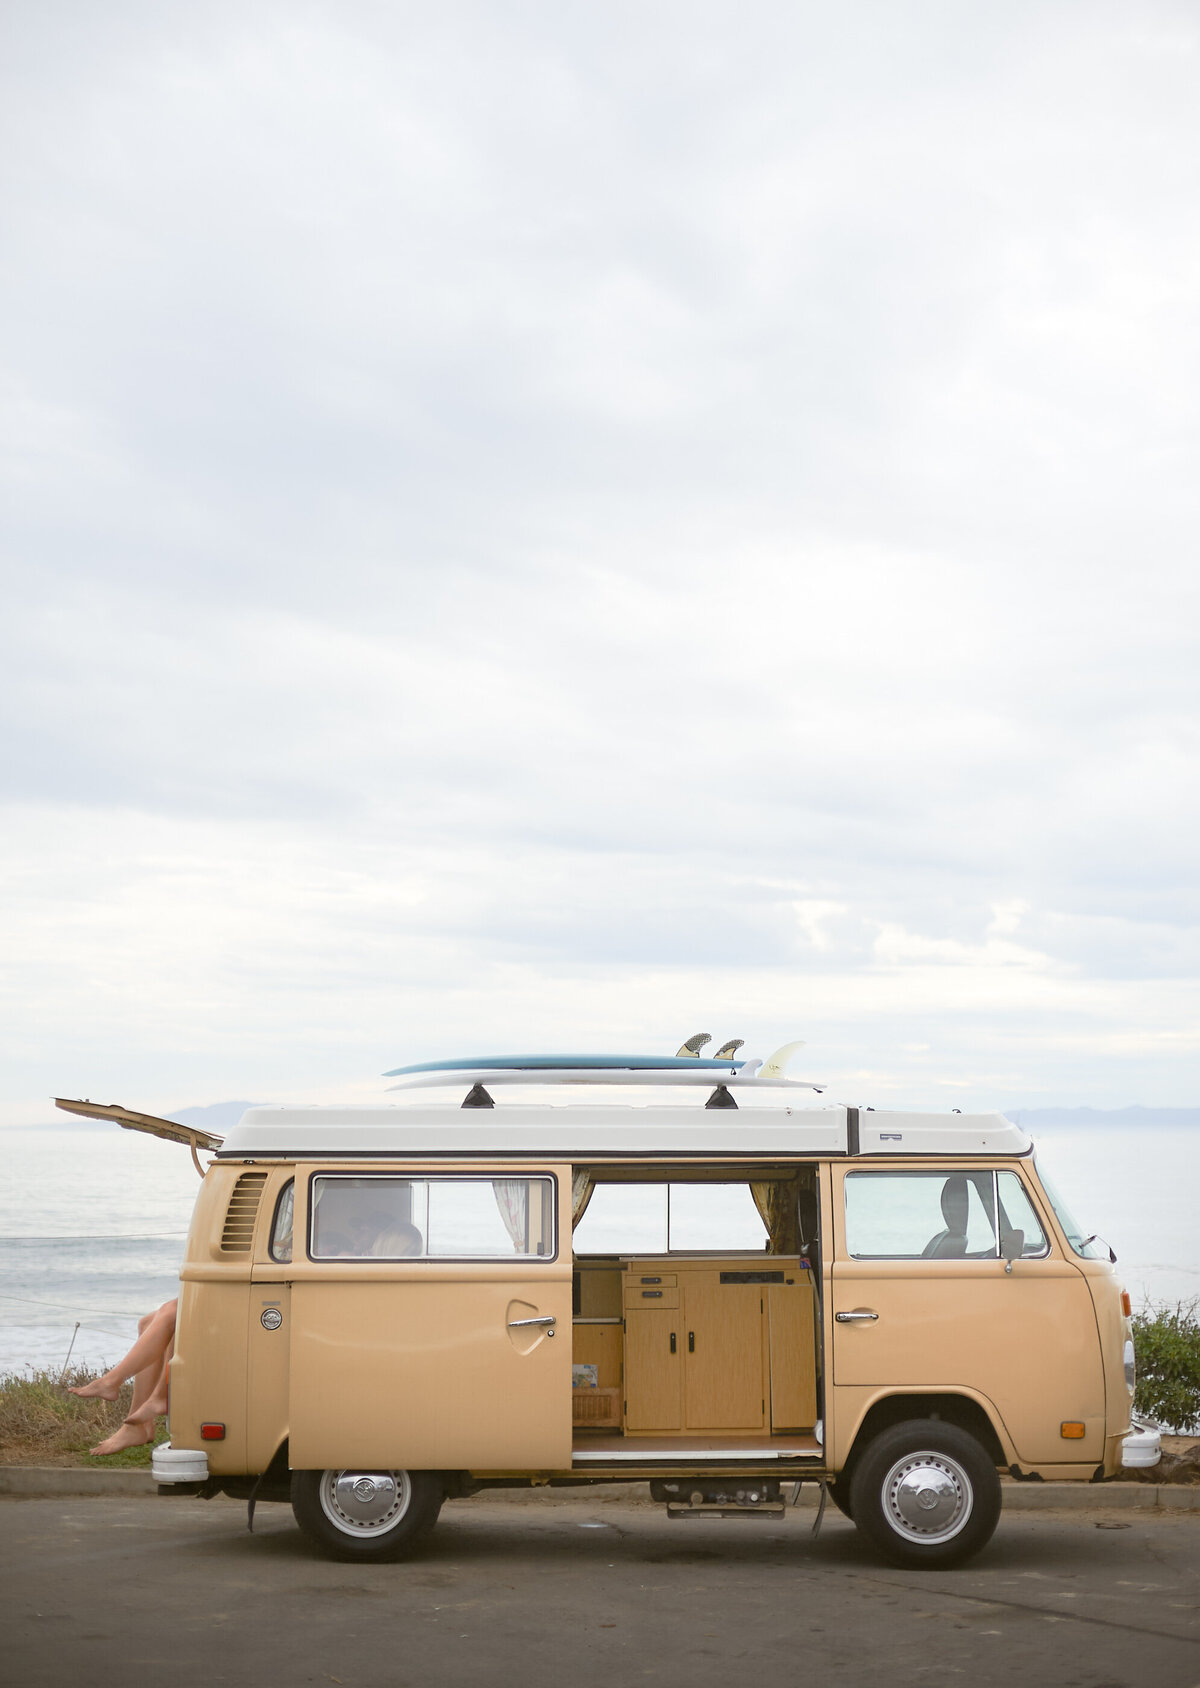 California VW bus surfer life